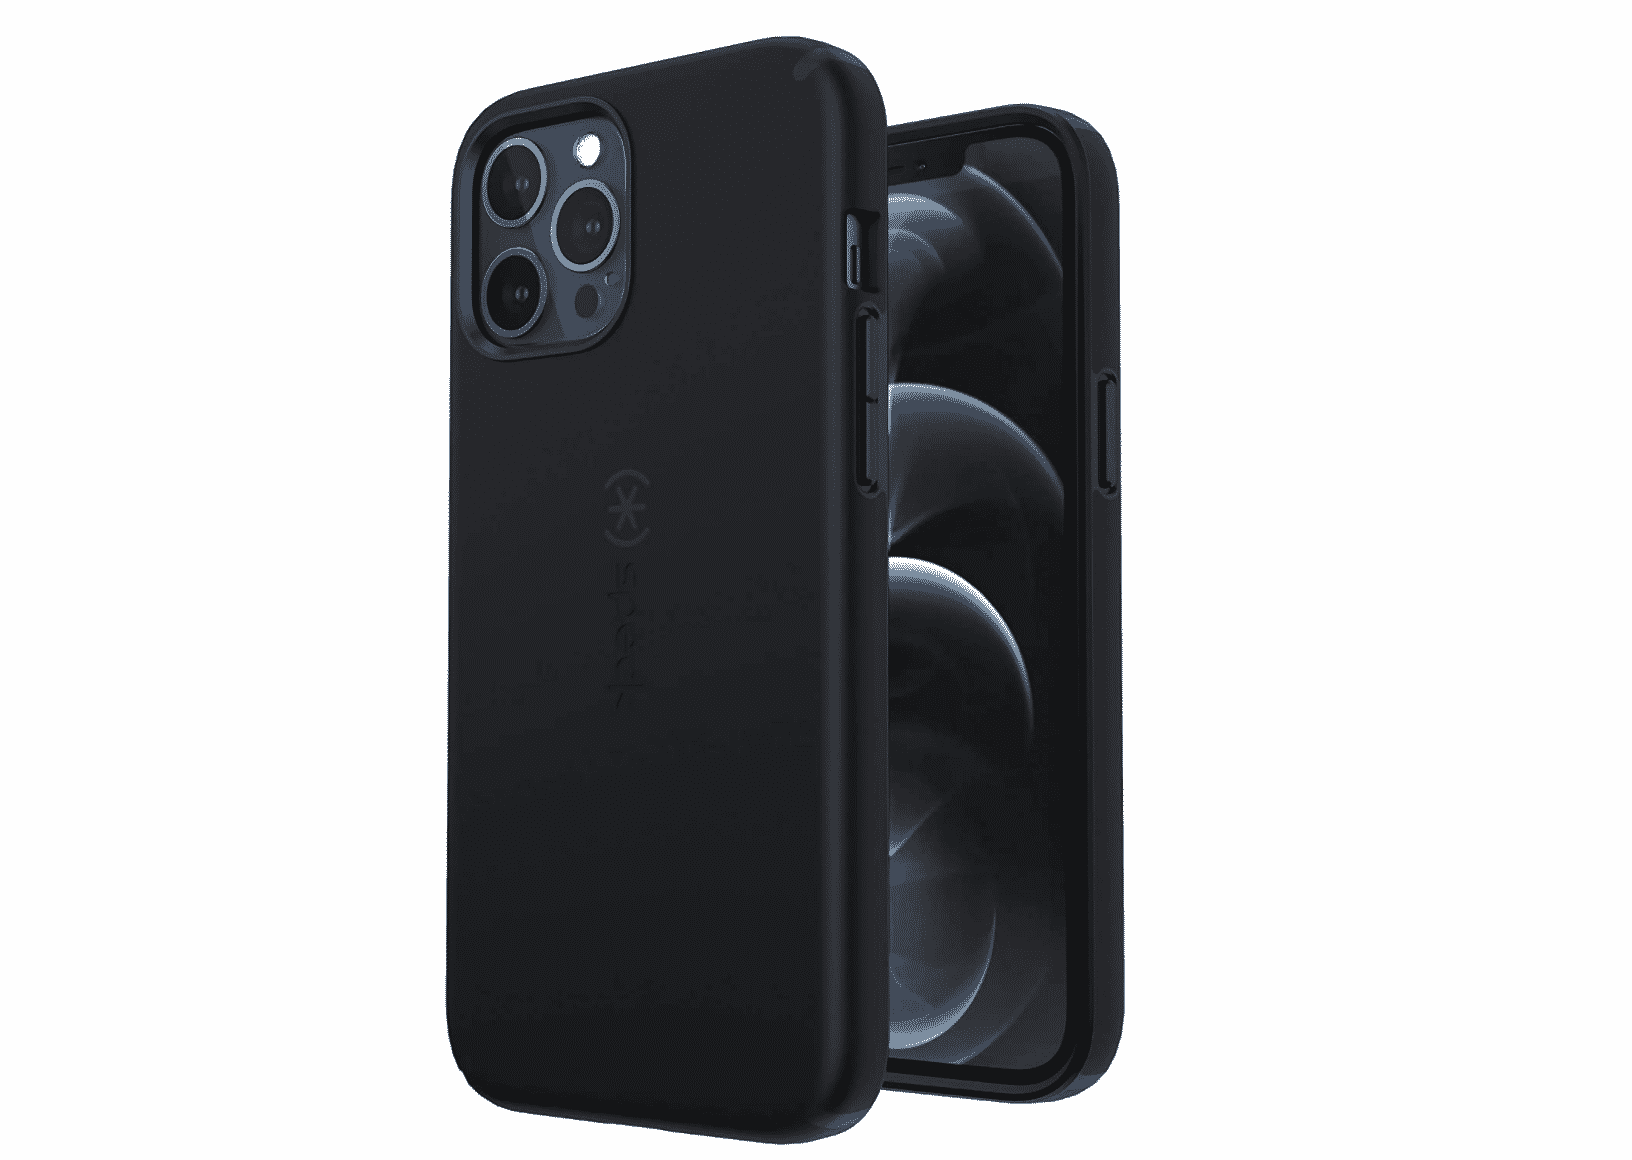 Protect your iPhone 12 Pro Max with the Speck CandyShell Pro Case, now 36% off